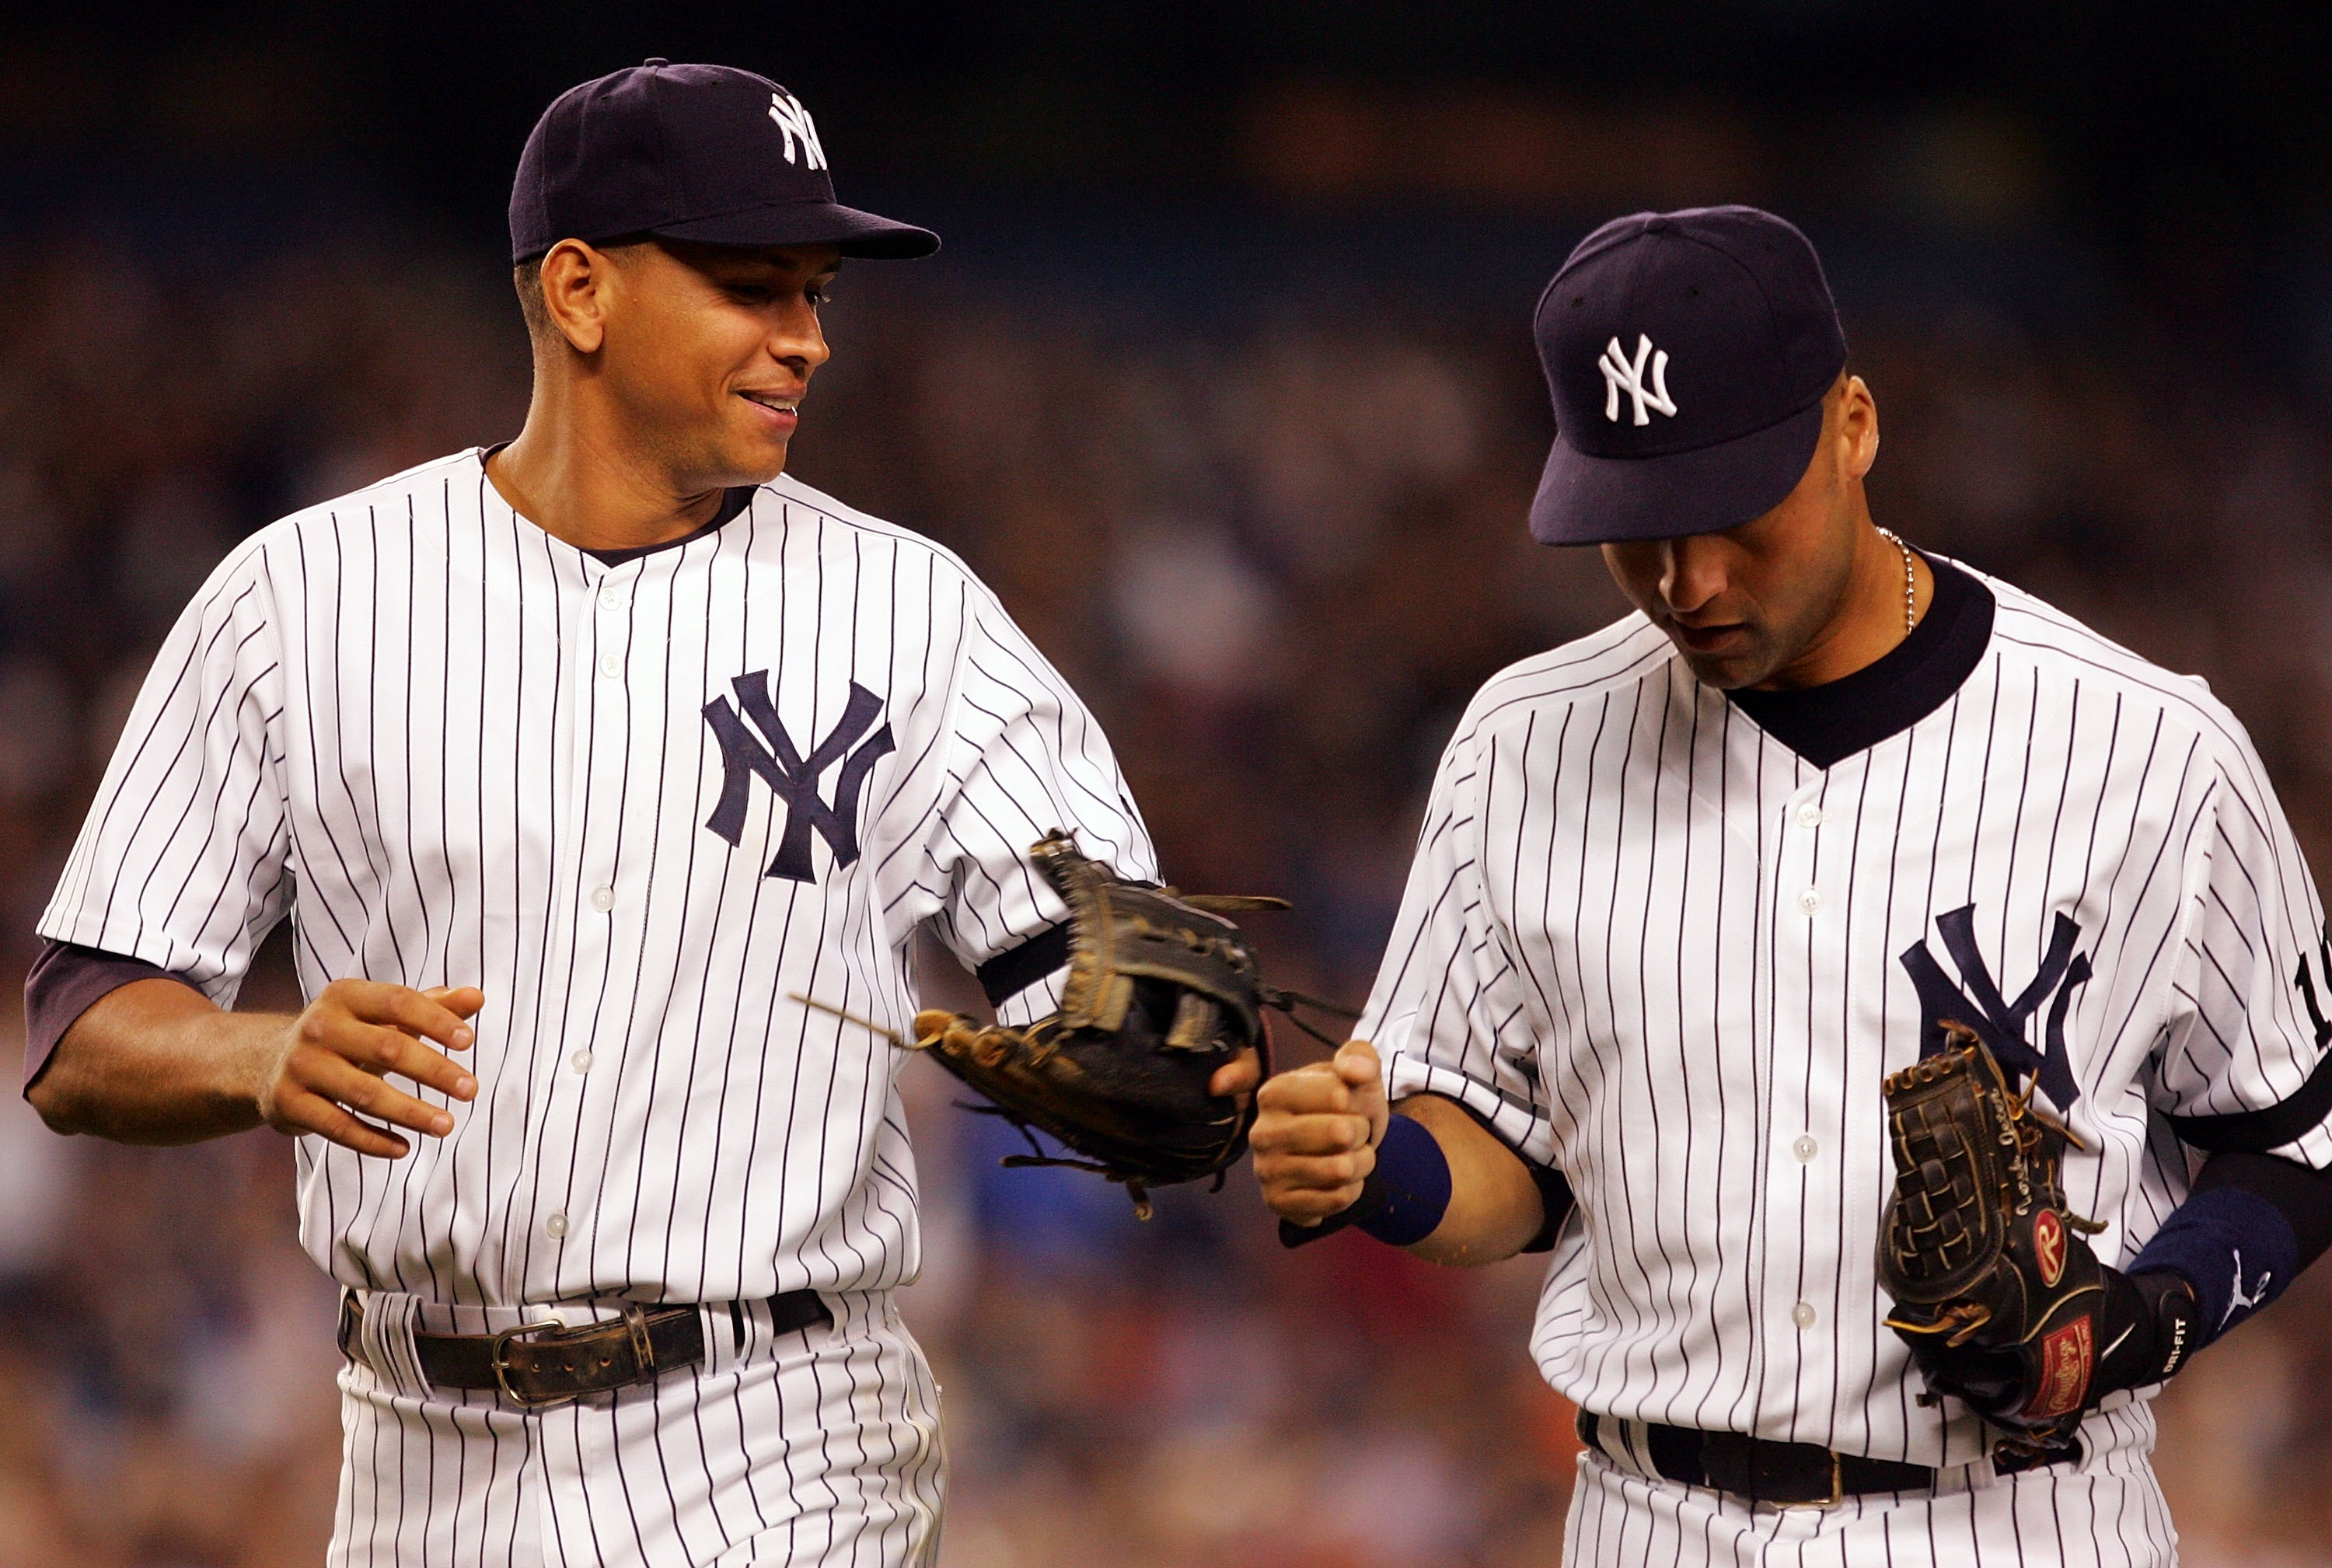 NEW YORK - SEPTEMBER 19: Alex Rodriguez #13 (L) and Derek Jeter #2 of the New York Yankees celebrate an inning double play against the Baltimore Orioles during their game at Yankee Stadium on September 19, 2007 in the Bronx borough of New York City.  (Pho